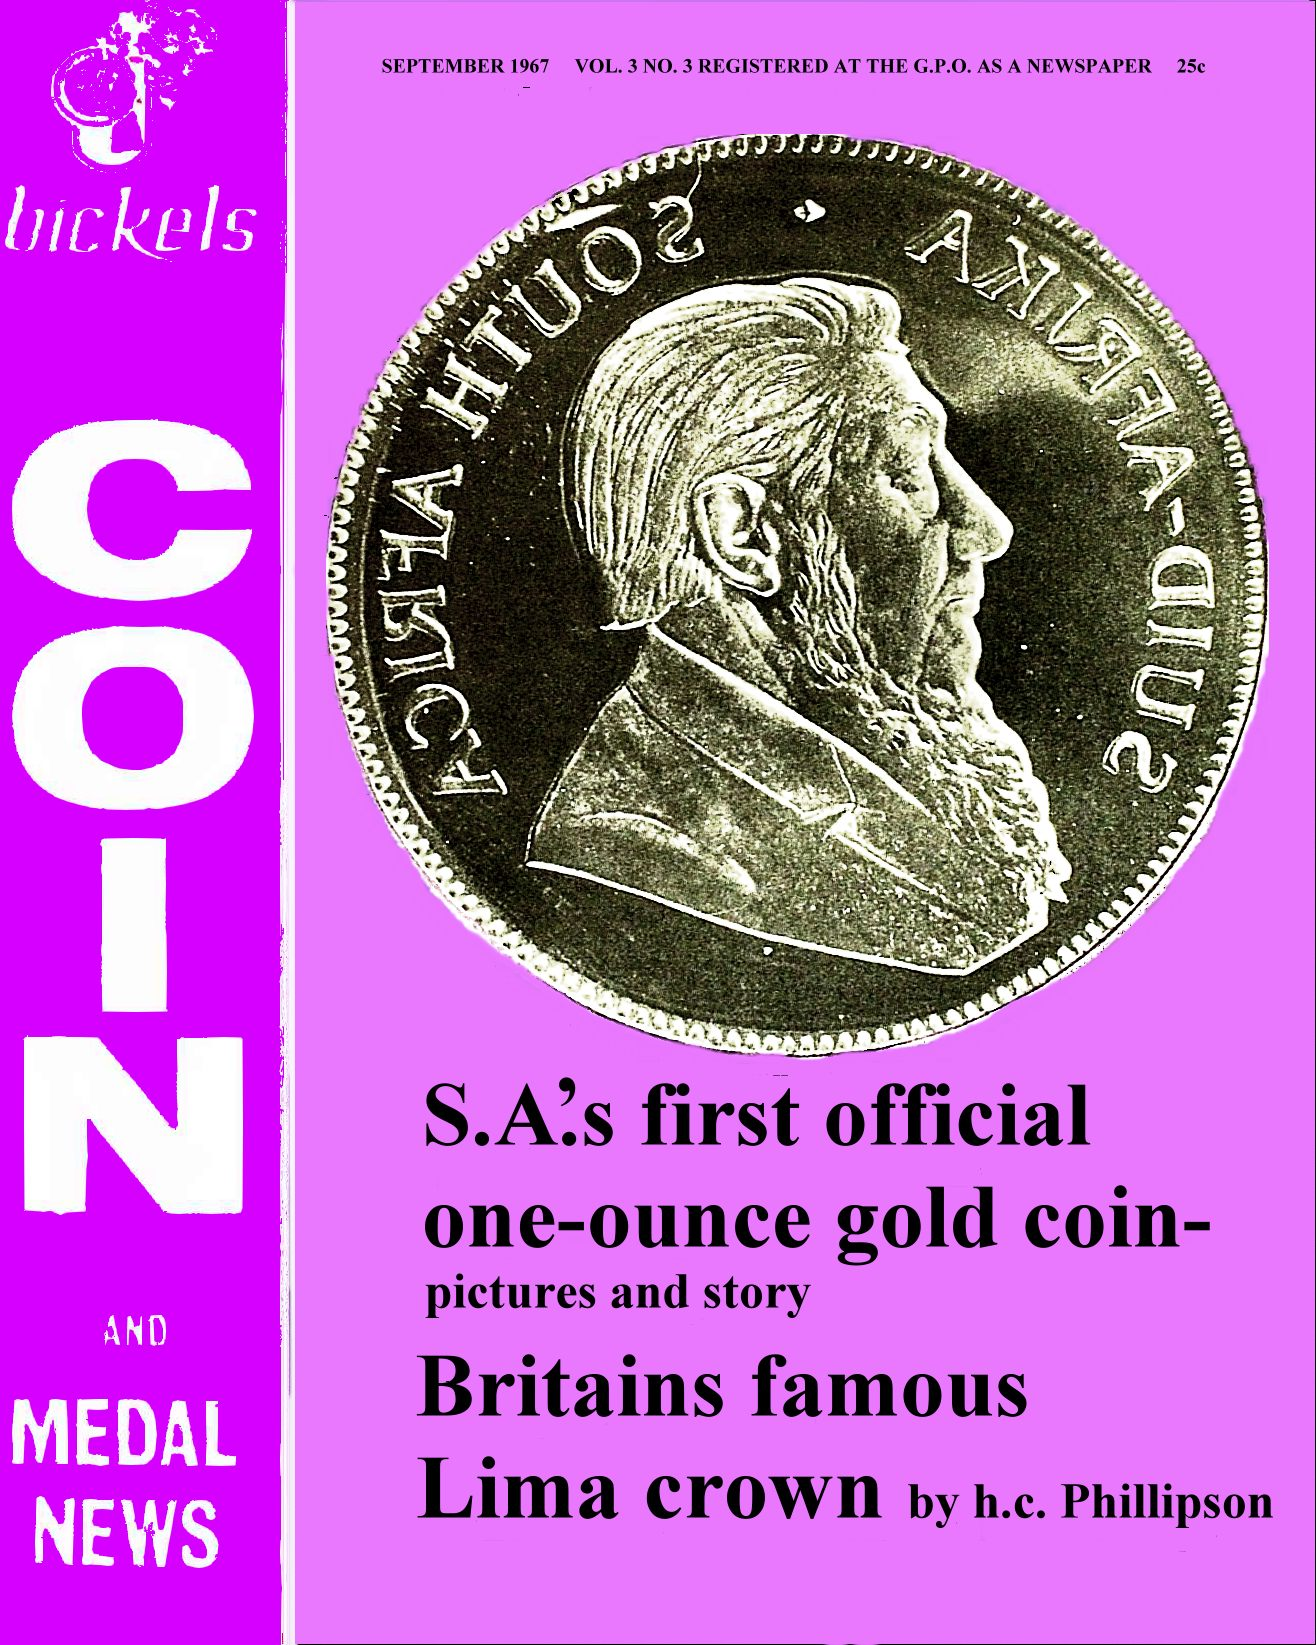 Bickels Coin & Medal News September 1967 Vol 3 No 3